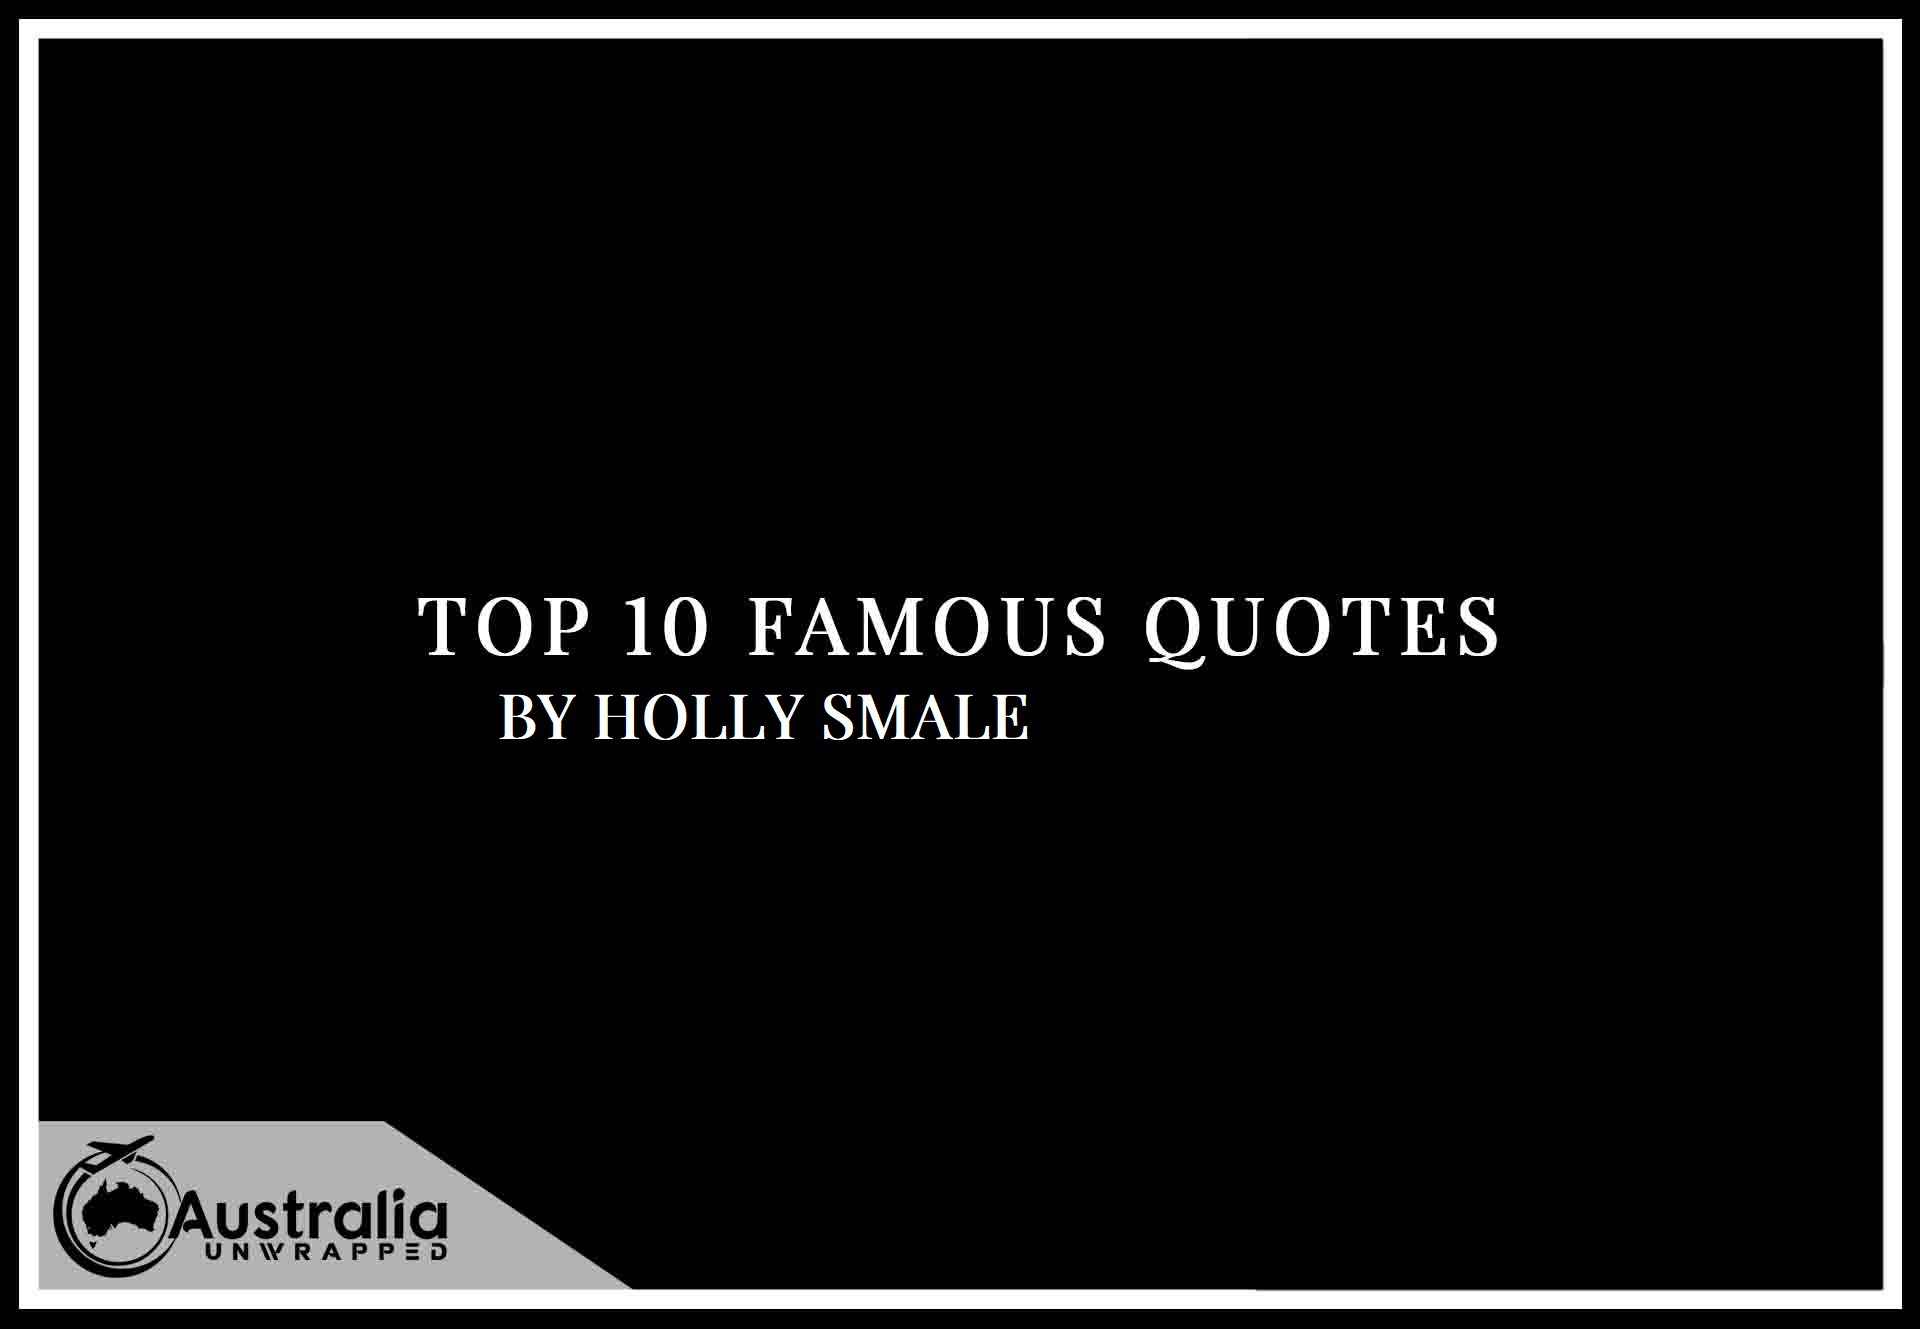 Top 10 Famous Quotes by Author Holly Smale